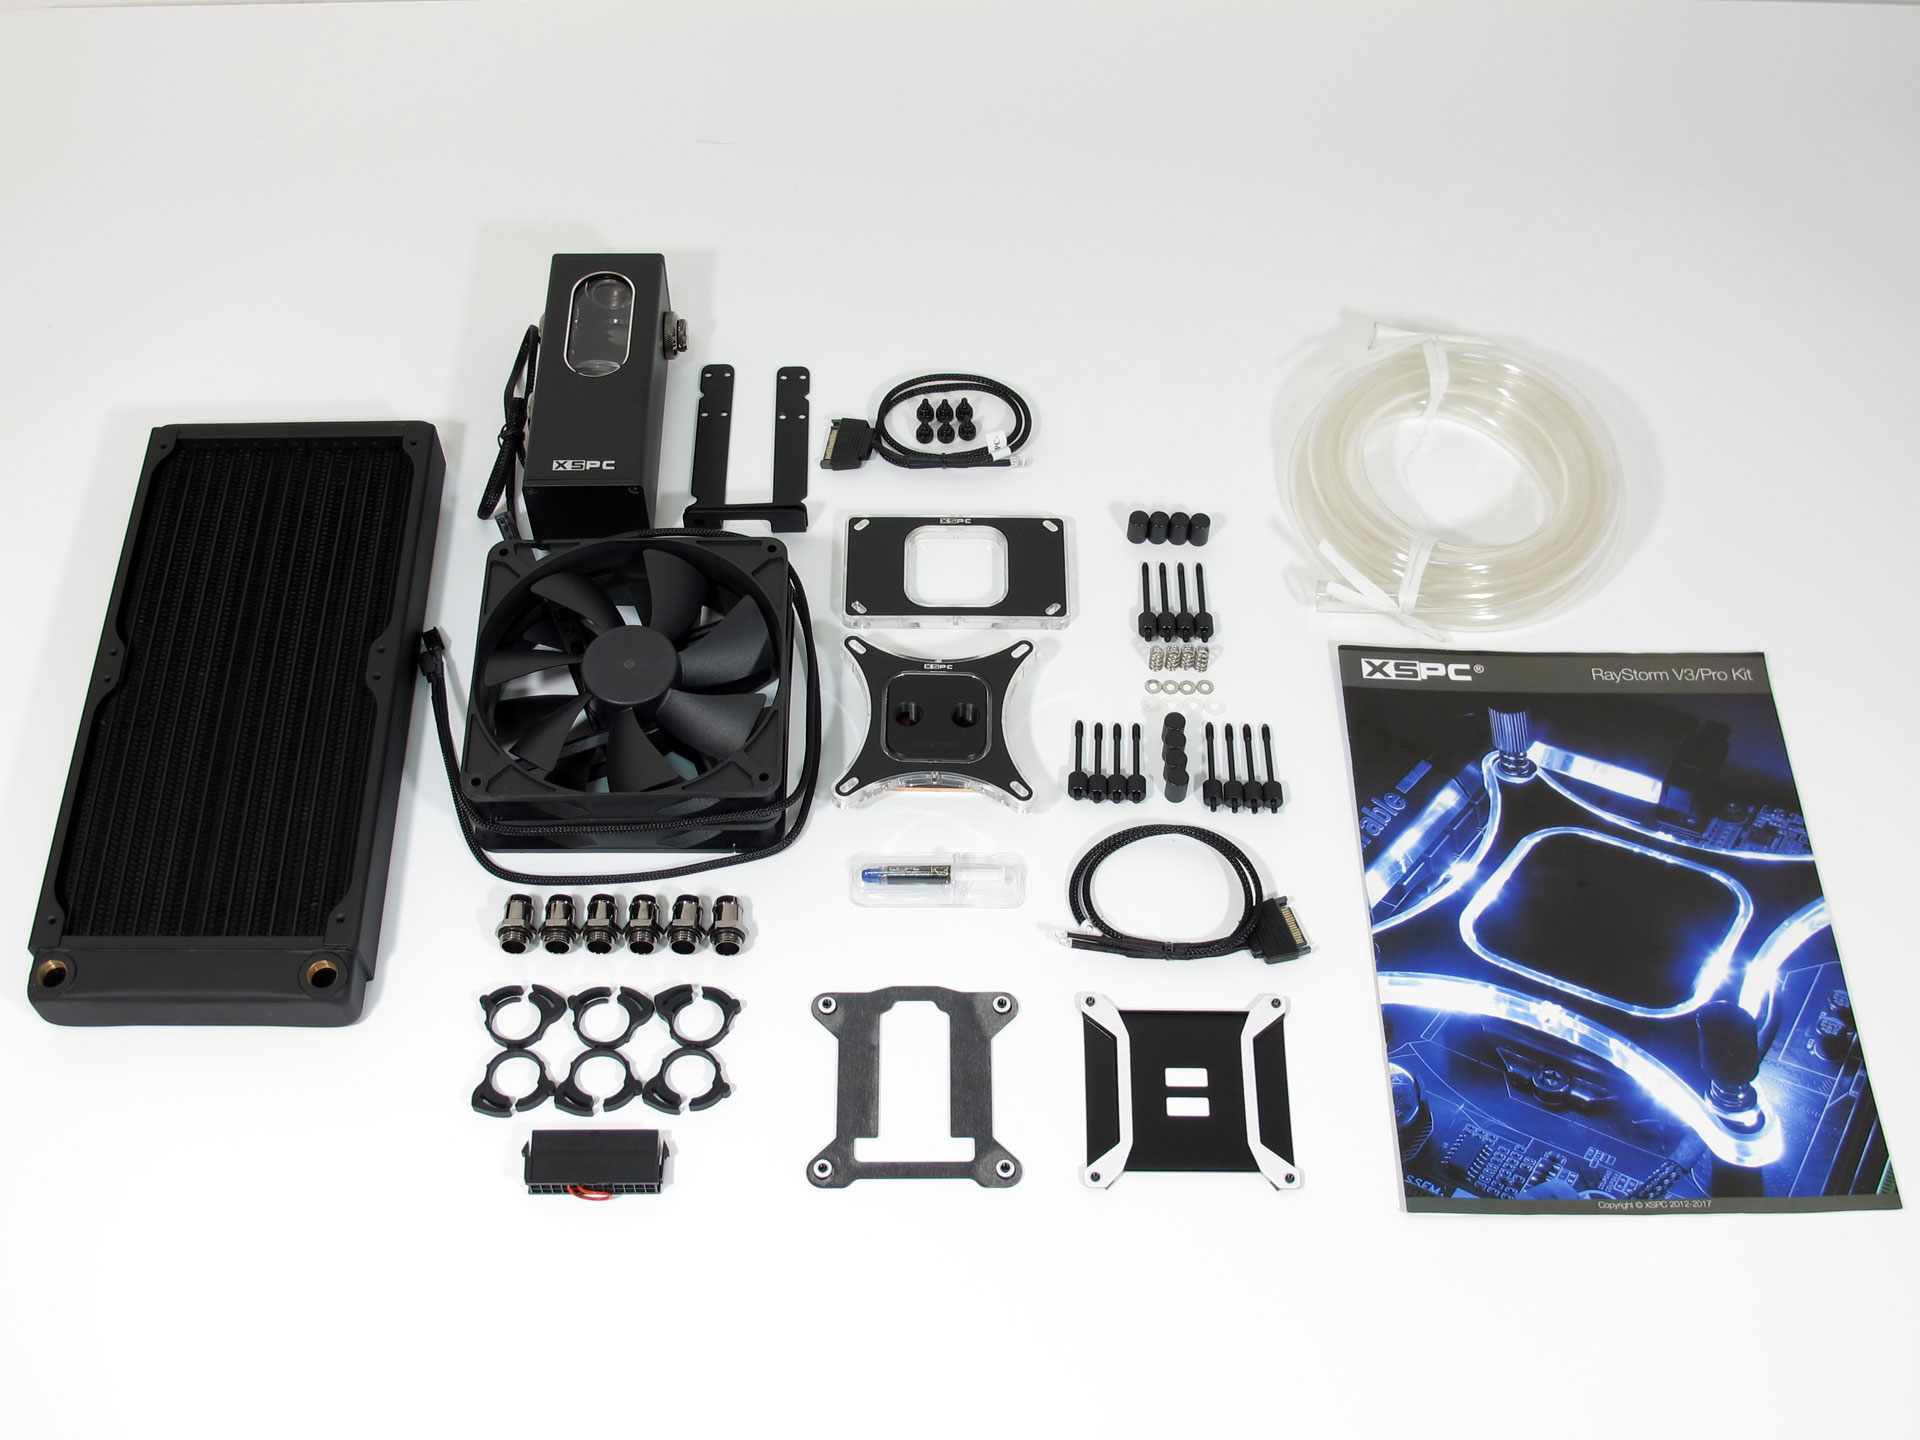 ex280-ion-kit-contents.jpg